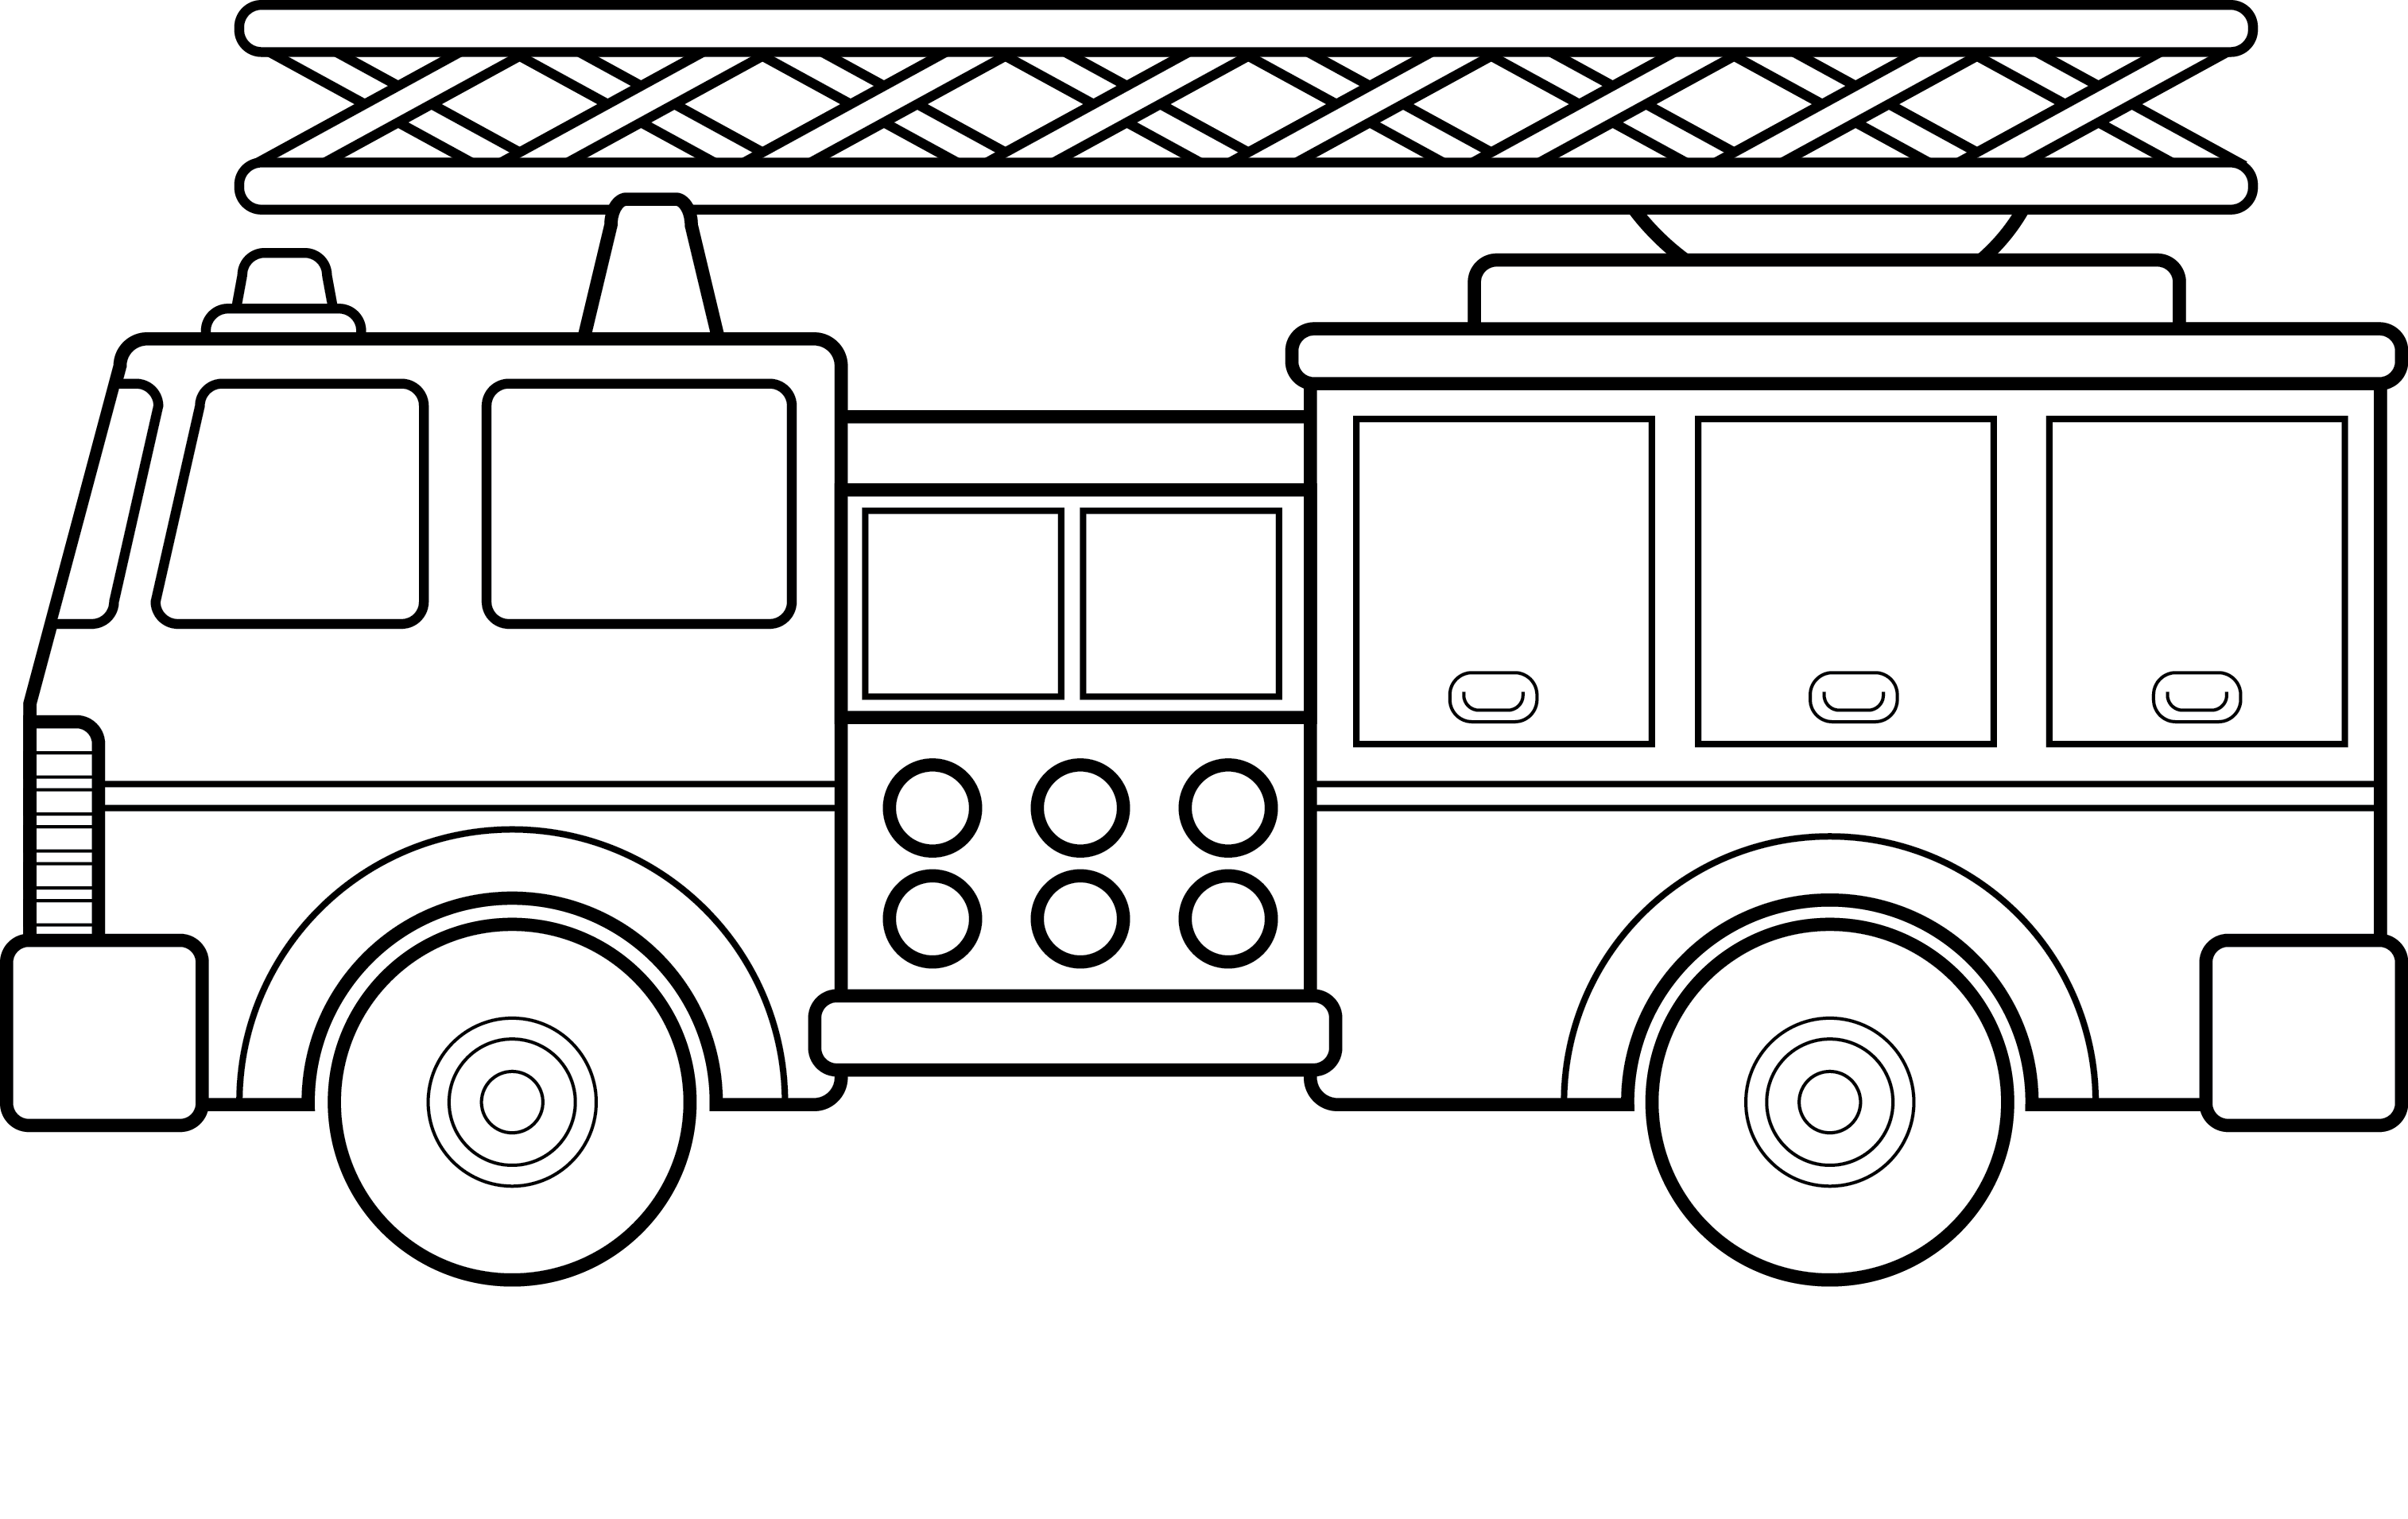 14 Firetruck Coloring Pages - Fire Engine Printable PDF